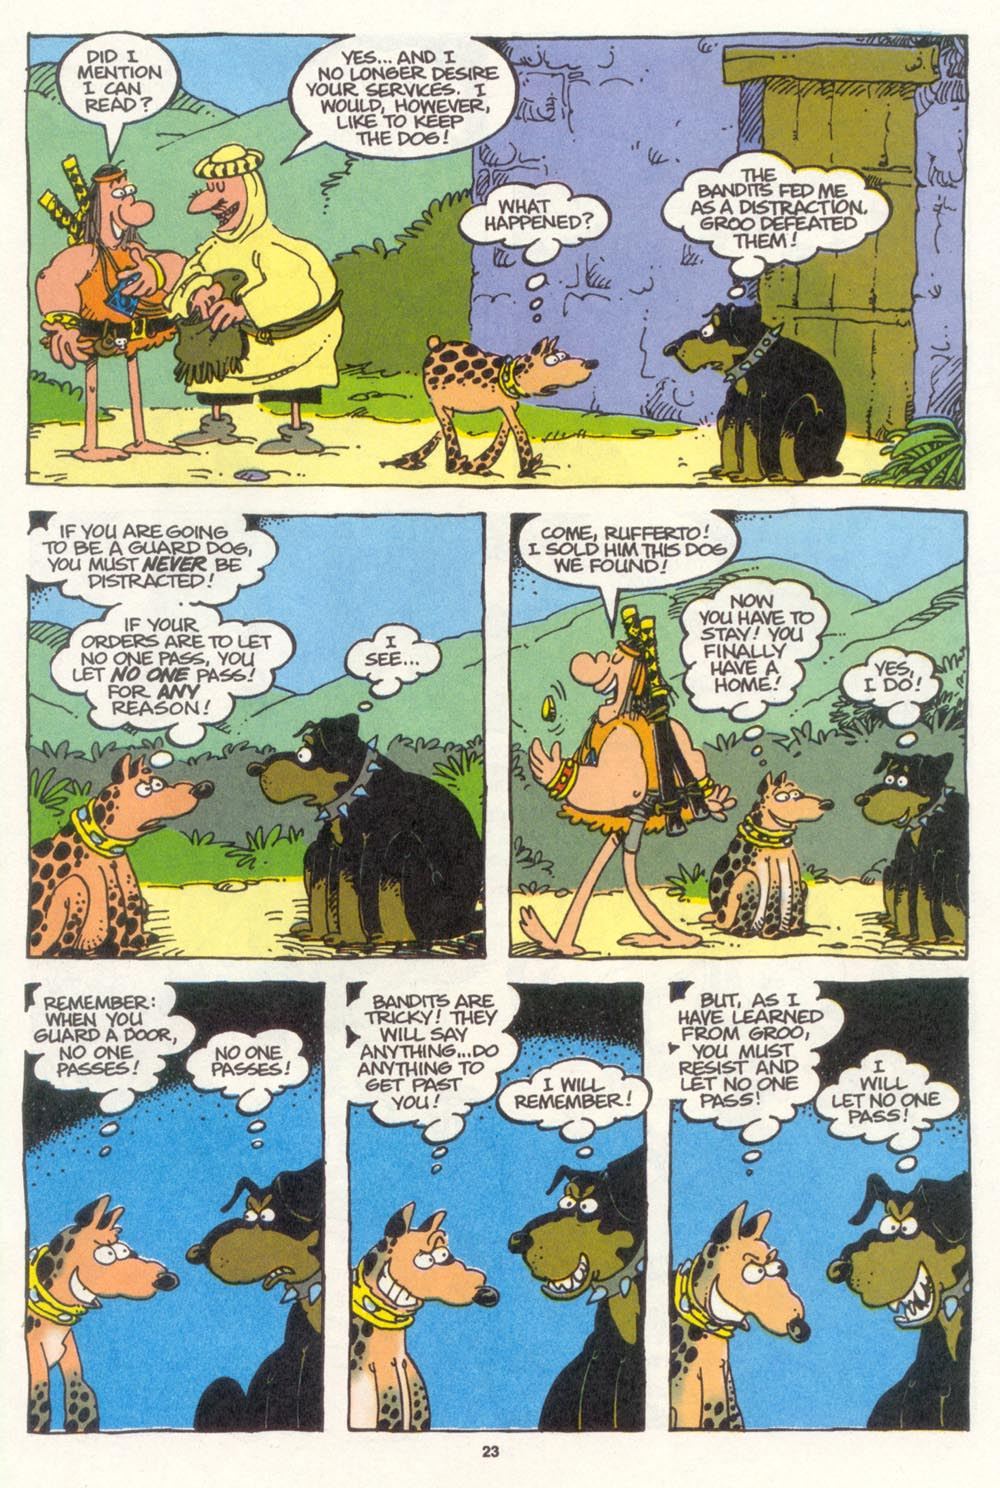 Read online Sergio Aragonés Groo the Wanderer comic -  Issue #104 - 25